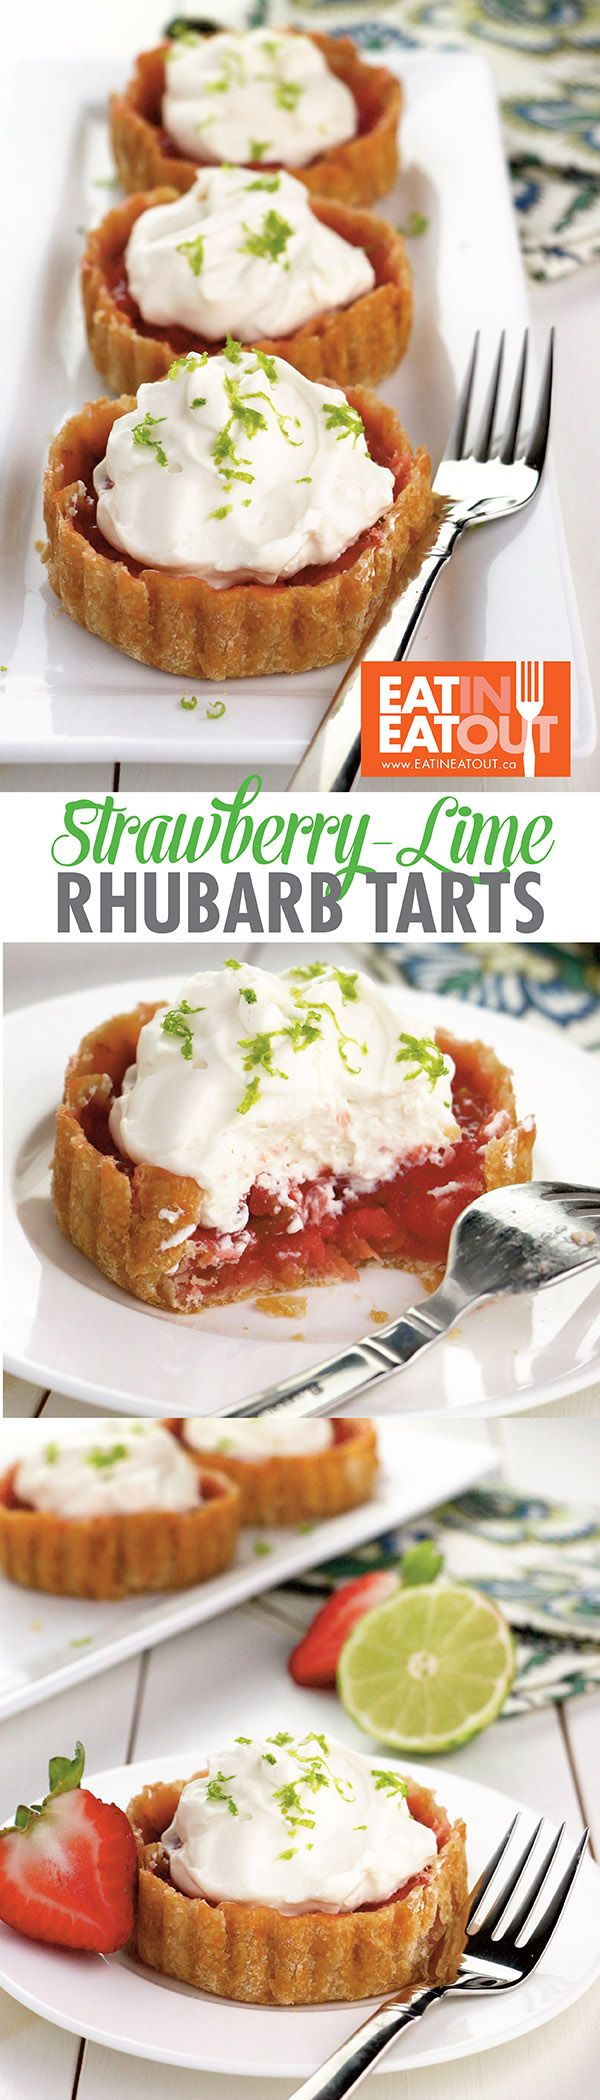 Dazzle Mom with this simple Strawberry-Lime Rhubarb Tart #mothersday #yummy #dessert